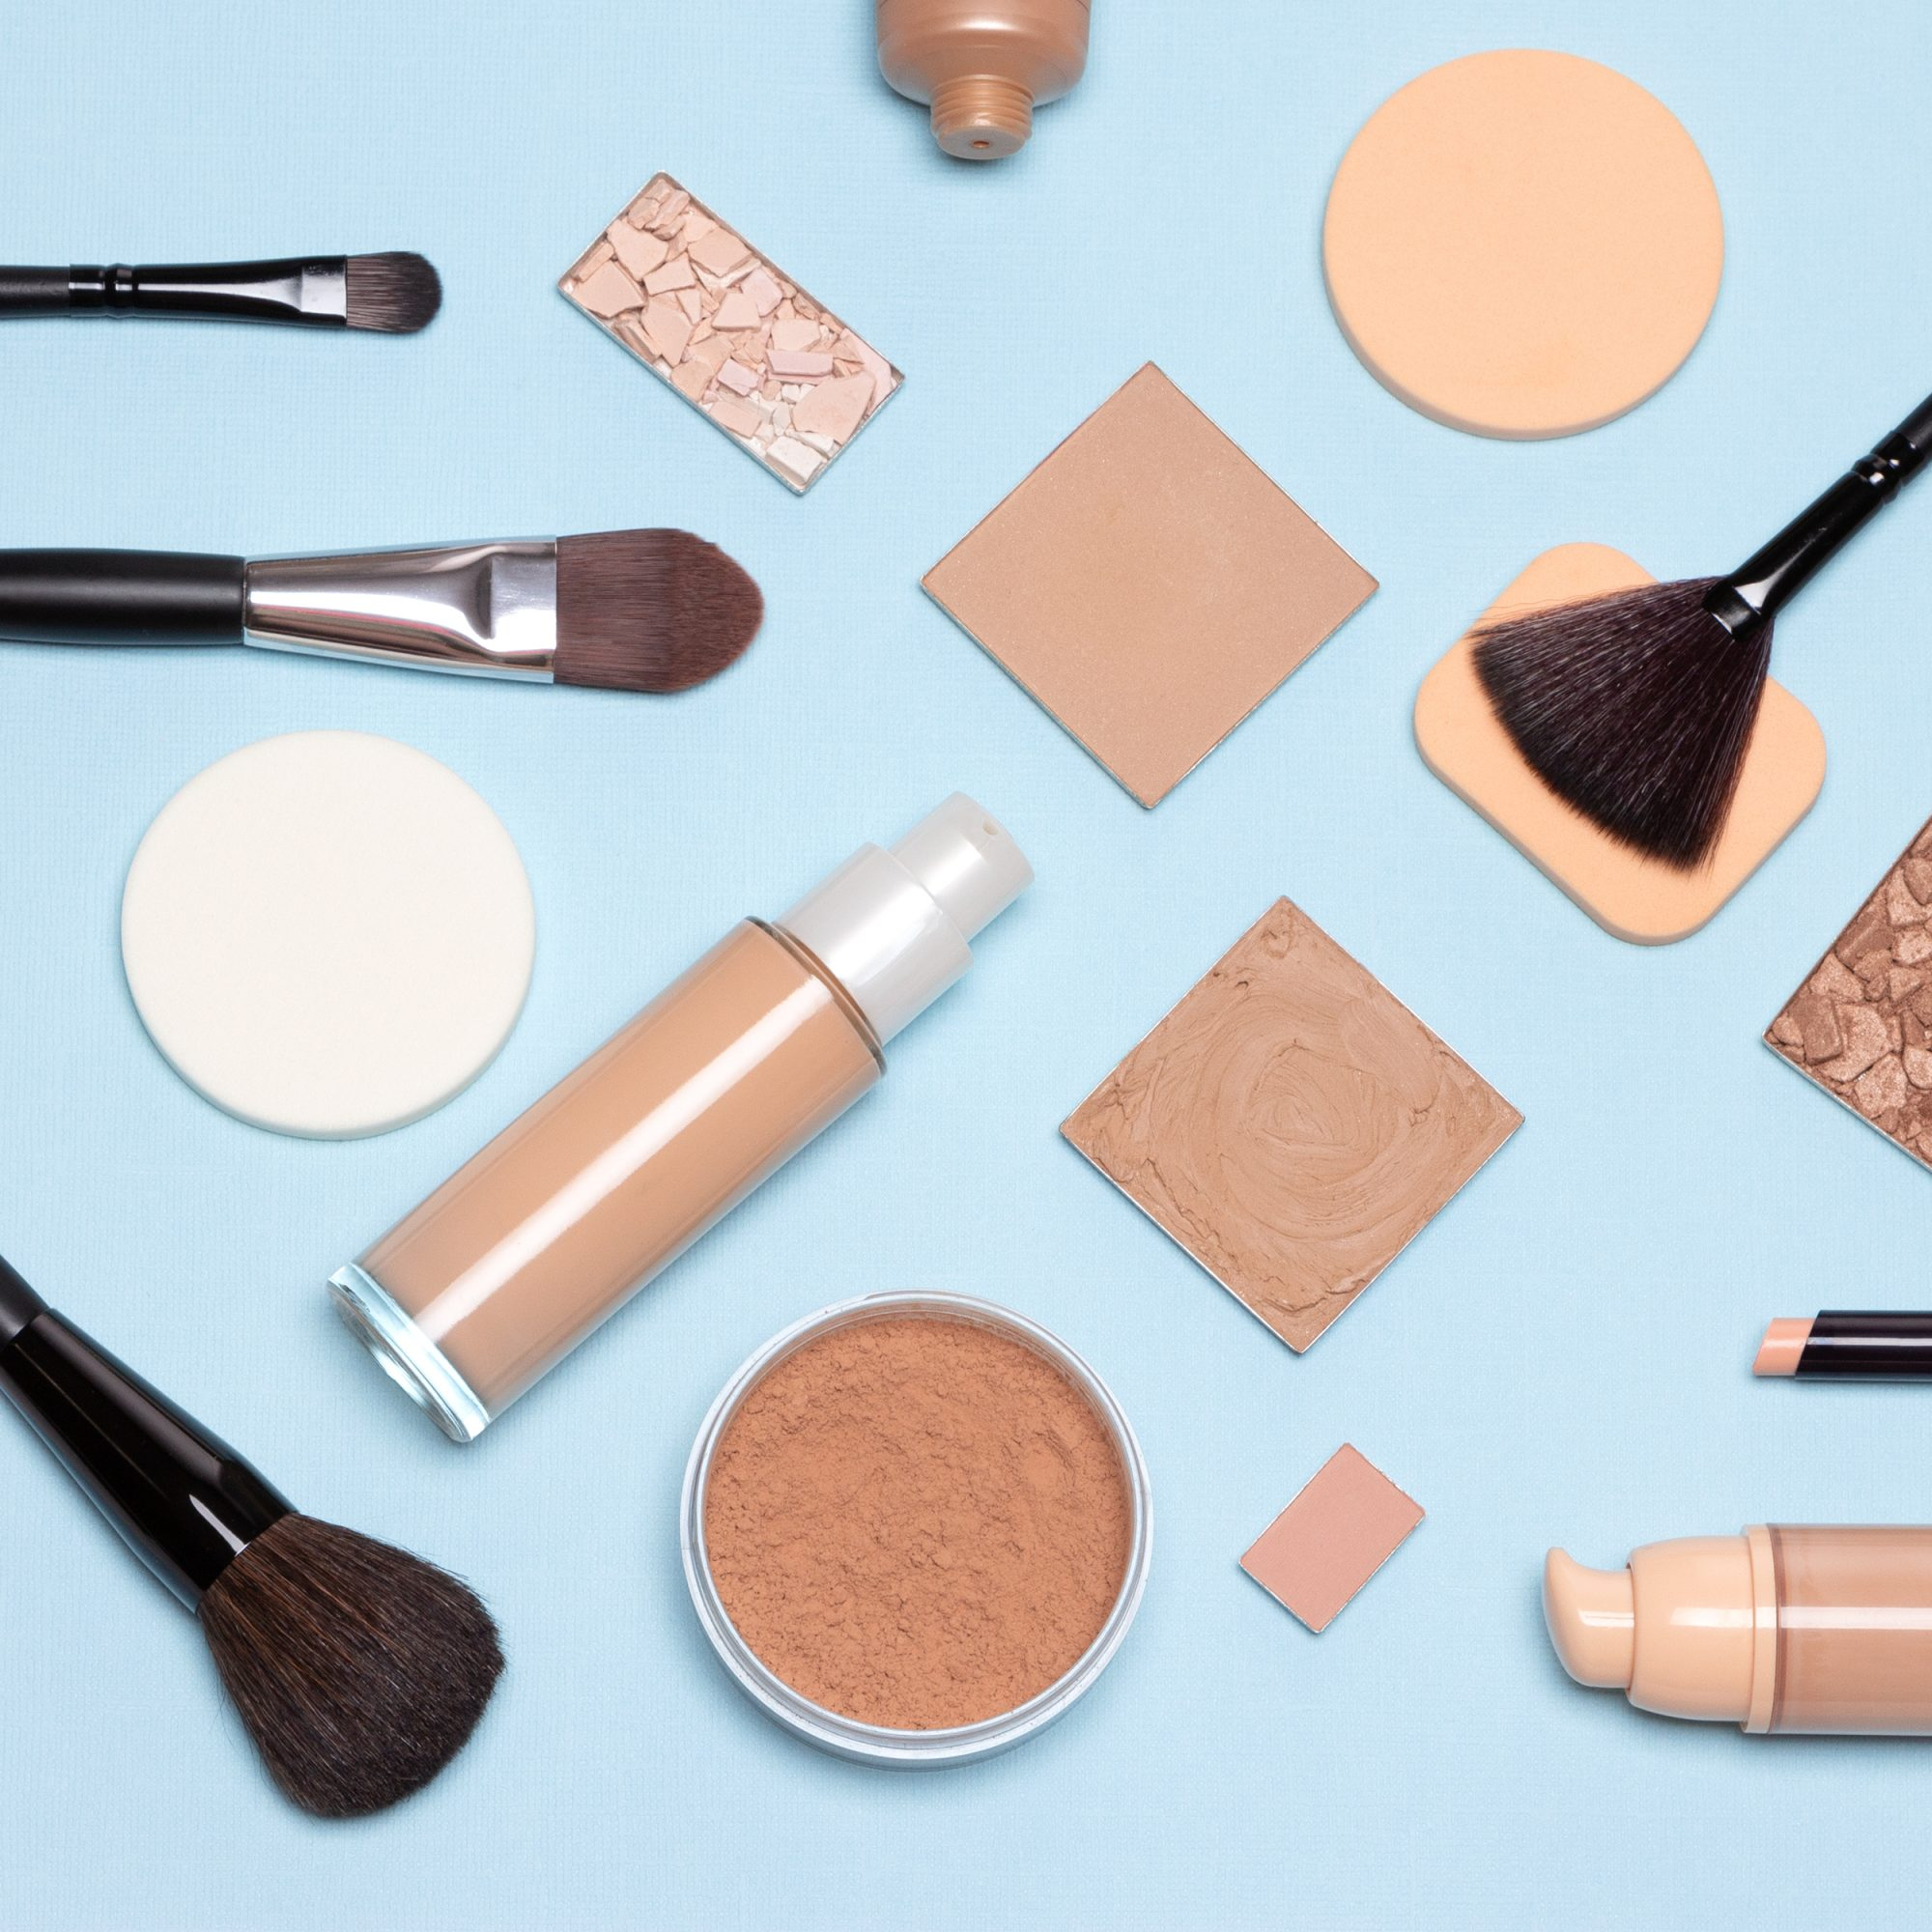 5 Bronzer Mistakes That are Secretly Making You Look Older